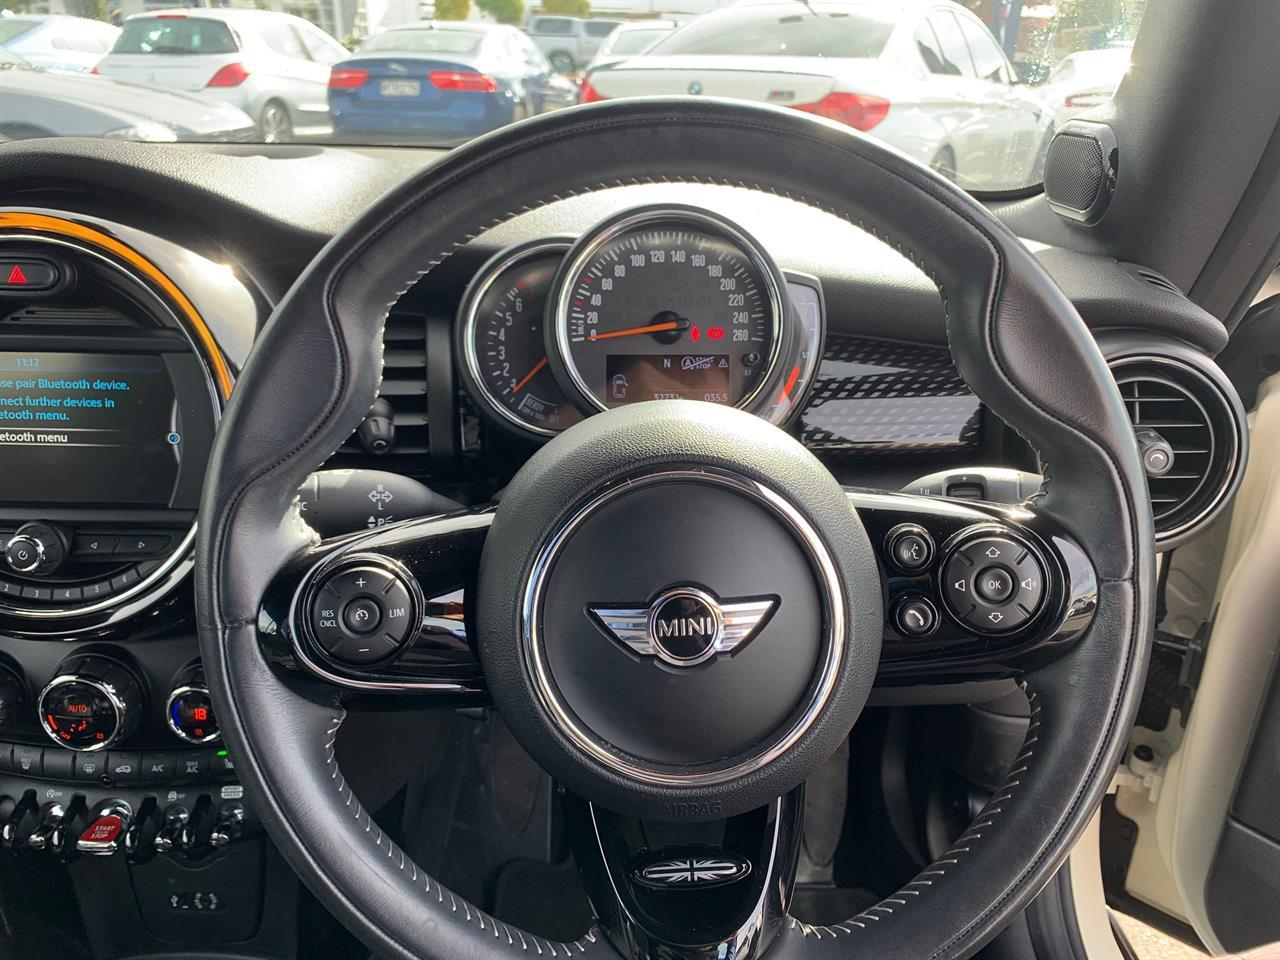 image-12, 2018 Mini Cooper S 2.0T 6 Speed Manual Cabriolet N at Christchurch